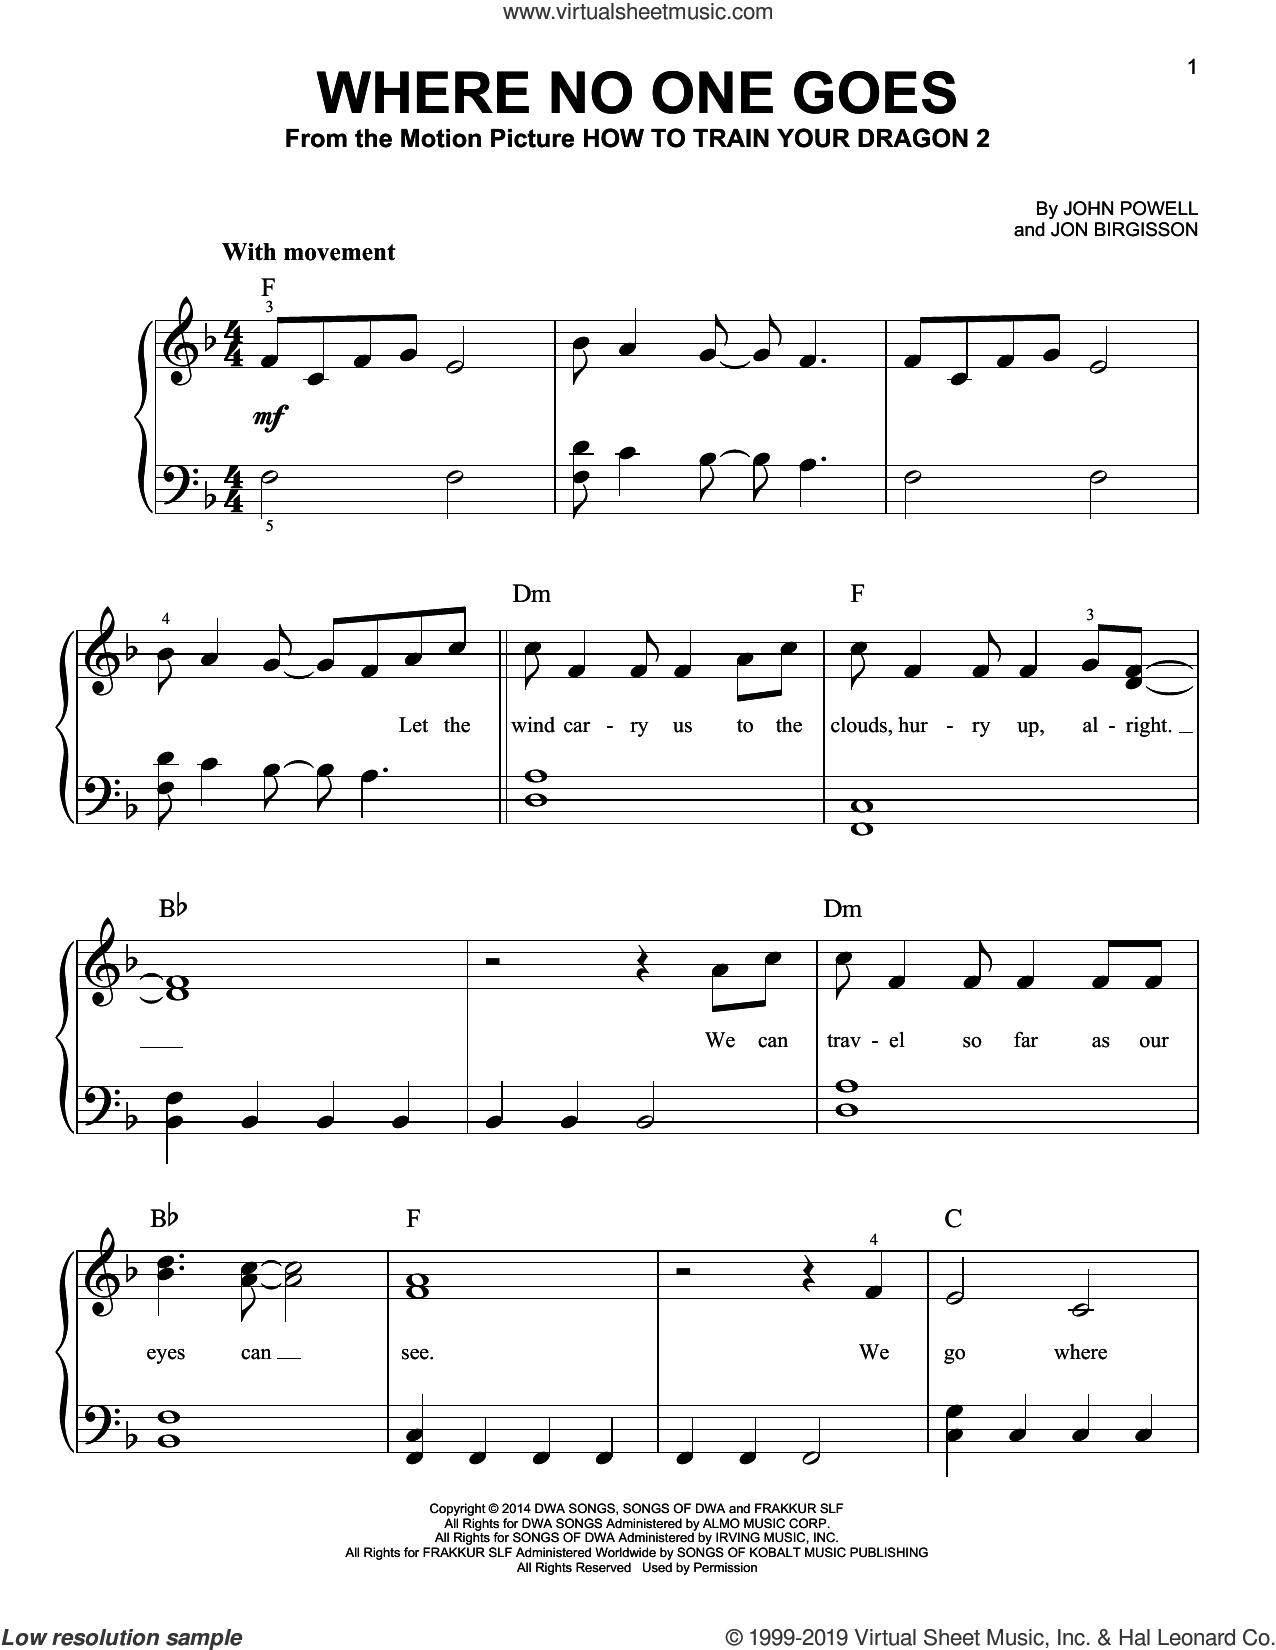 Where No One Goes (from How to Train Your Dragon 2) sheet music for piano solo by John Powell and Jon Birgisson, easy skill level